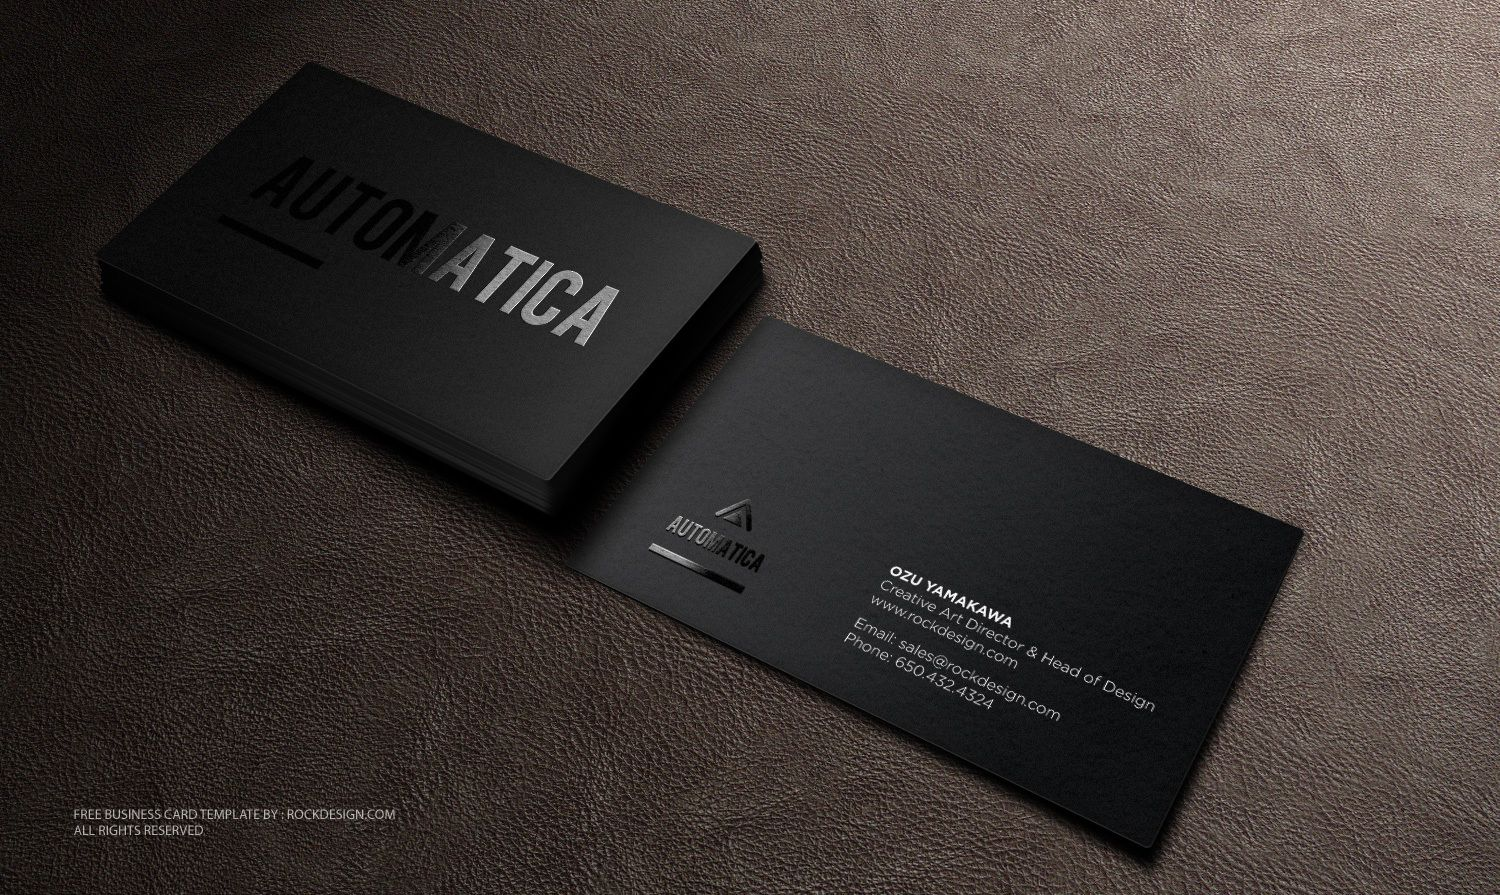 Black business card template download free design templates black business card template download free design templates cheaphphosting Image collections